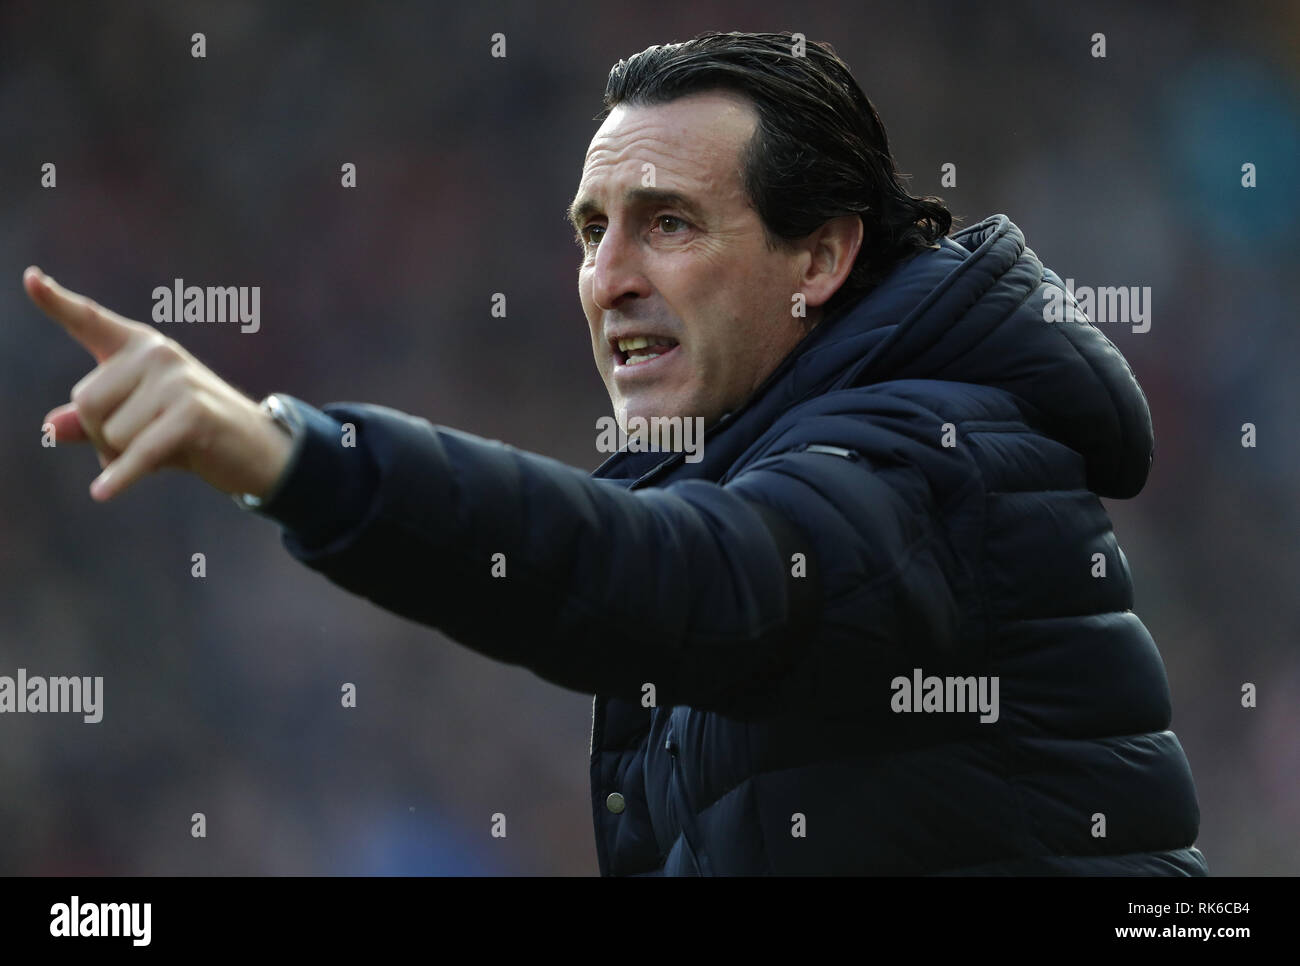 UNAI EMERY, ARSENAL FC MANAGER, HUDDERSFIELD TOWN FC V ARSENAL FC, PREMIER LEAGUE, 2019 - Stock Image